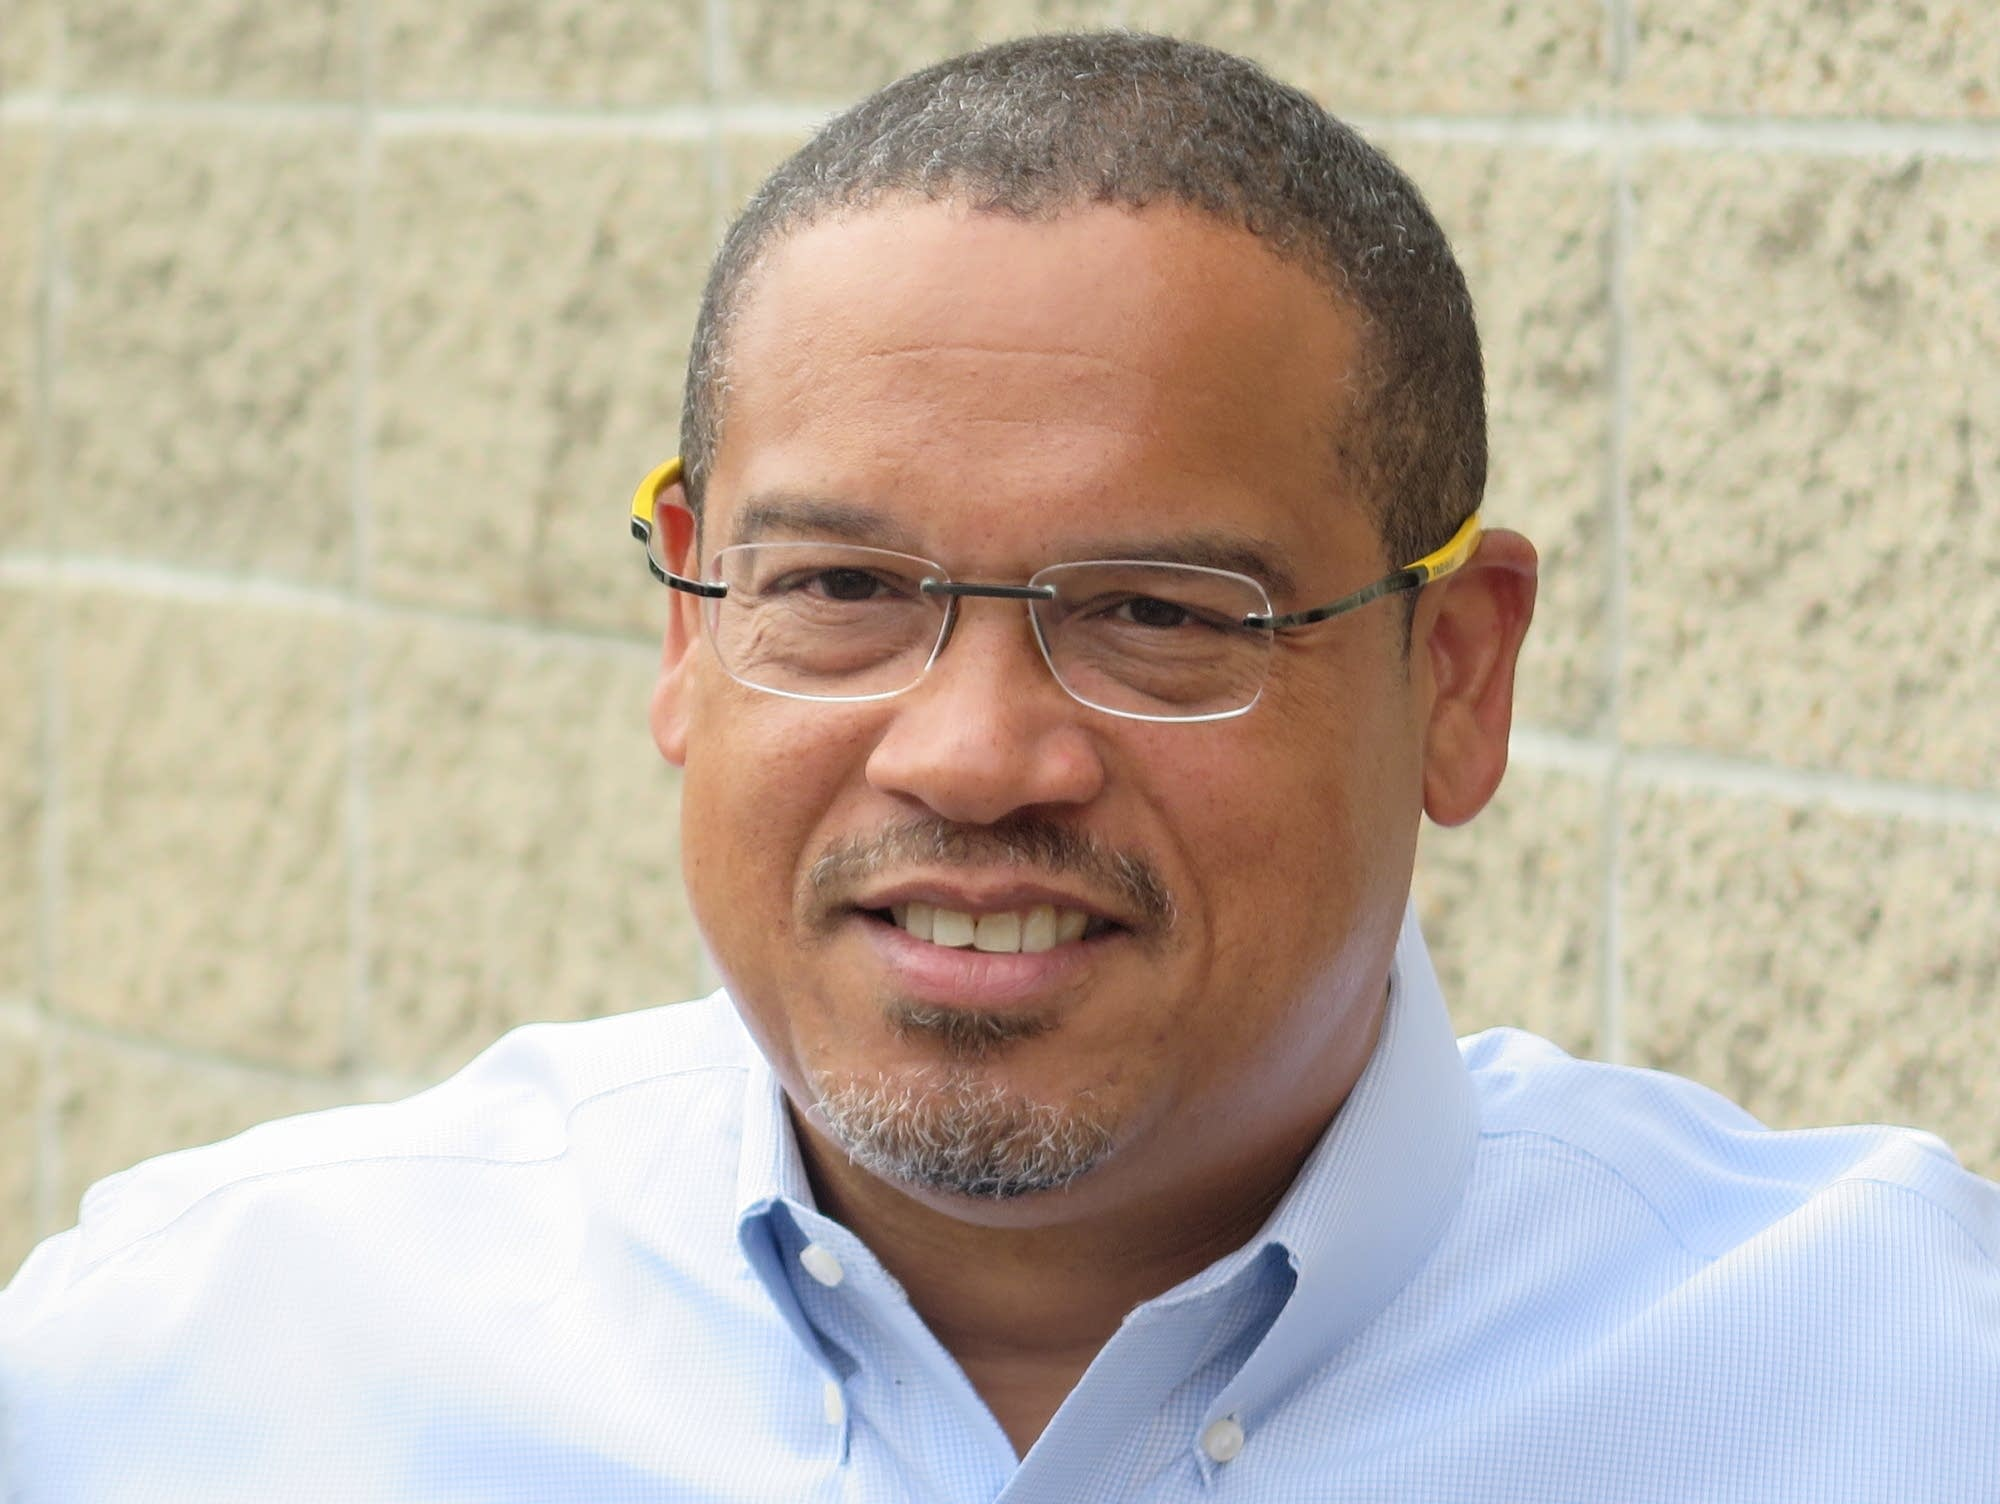 U.S. Representative Keith Ellison